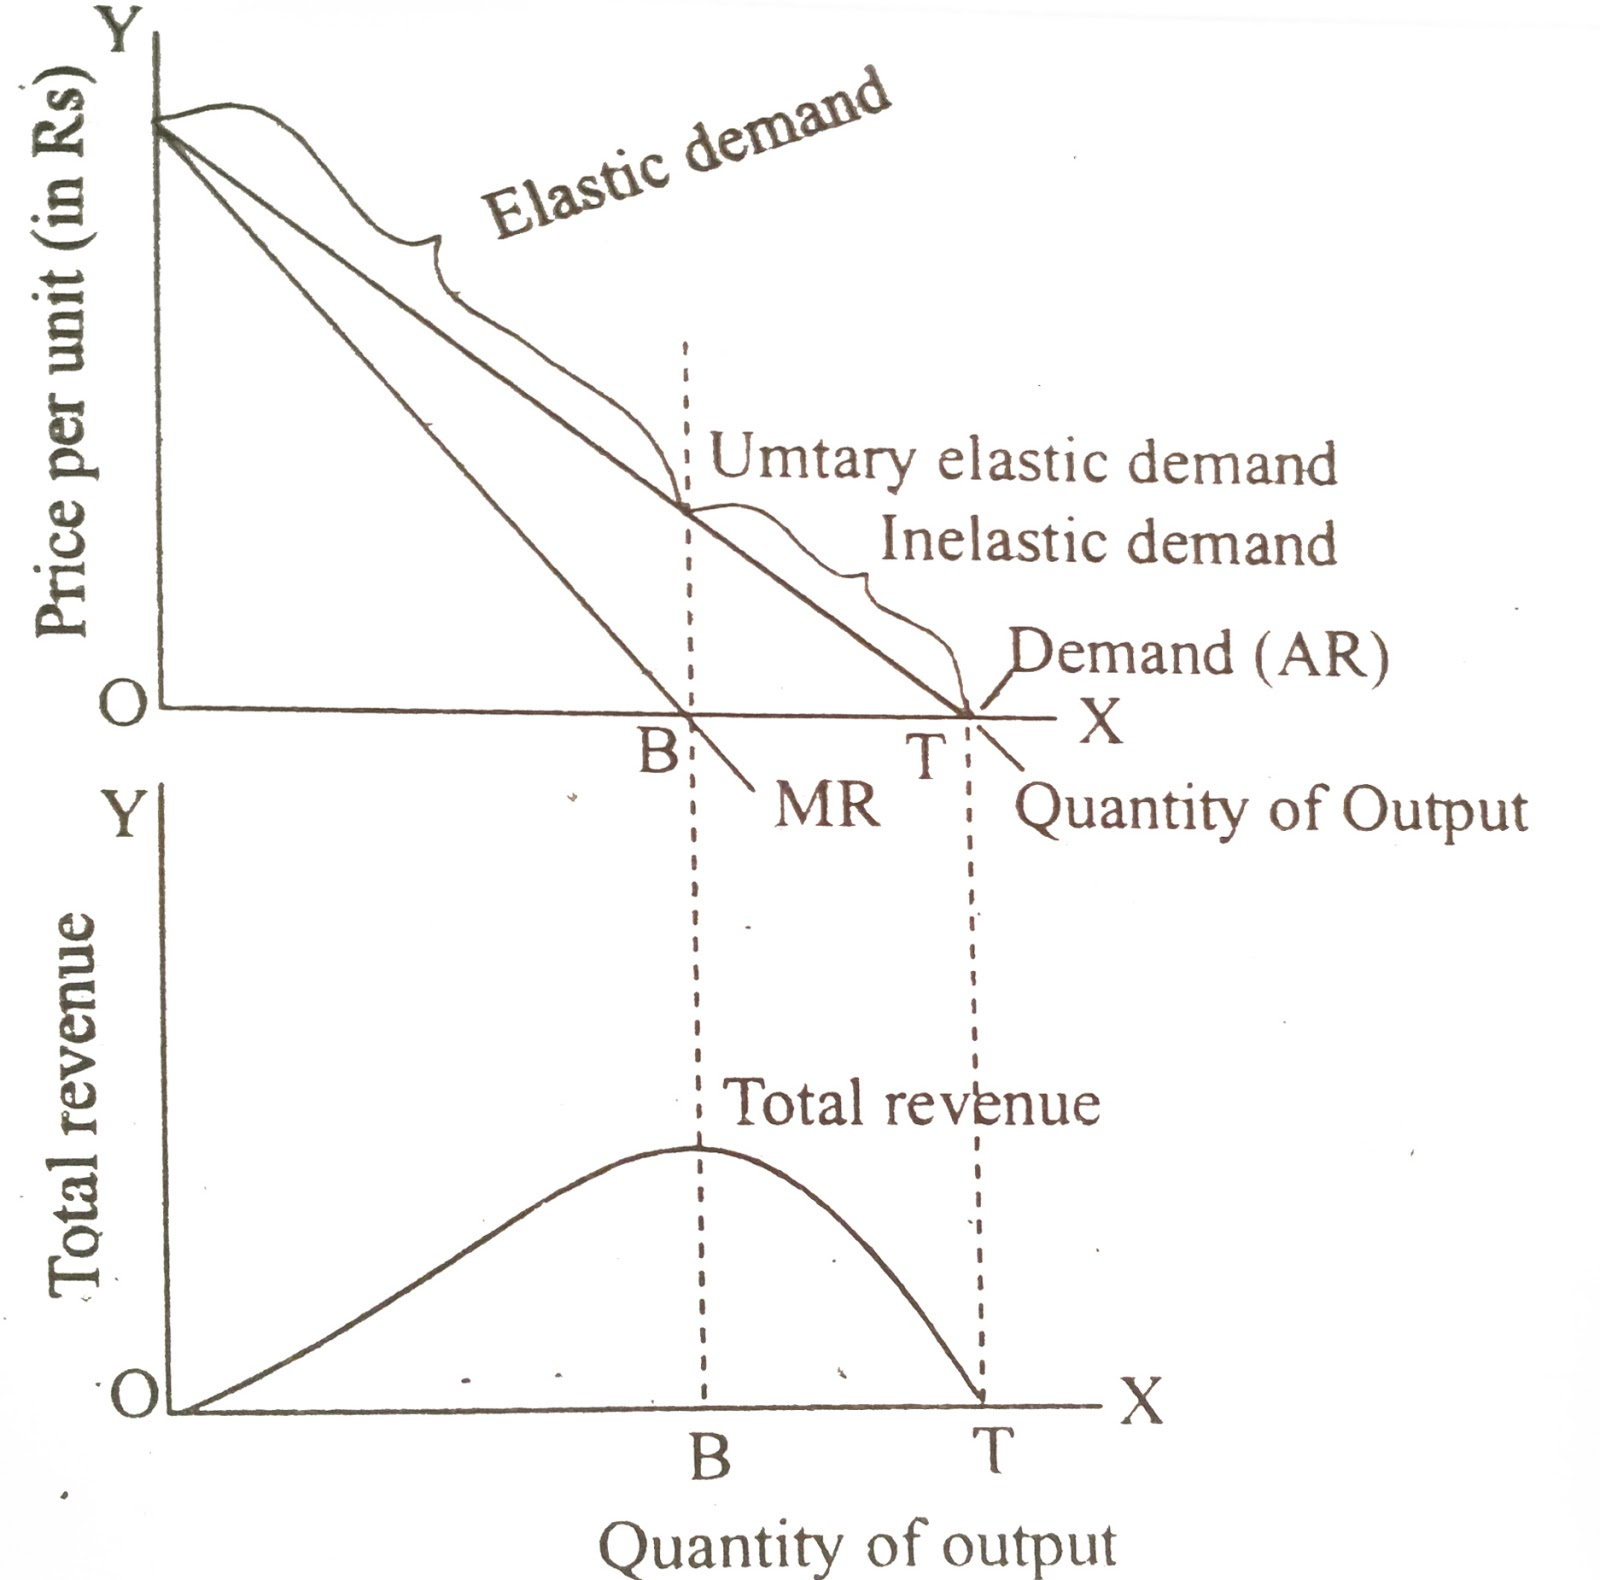 price elasticity of demand The cross elasticity of demand measures the responsiveness of the quantity demanded for a good to a change in the price of another good, keepingother things held constant  it is measured as the percentage change in quantity demanded for the first good that occurs in response to a percentage change in price of the second good.